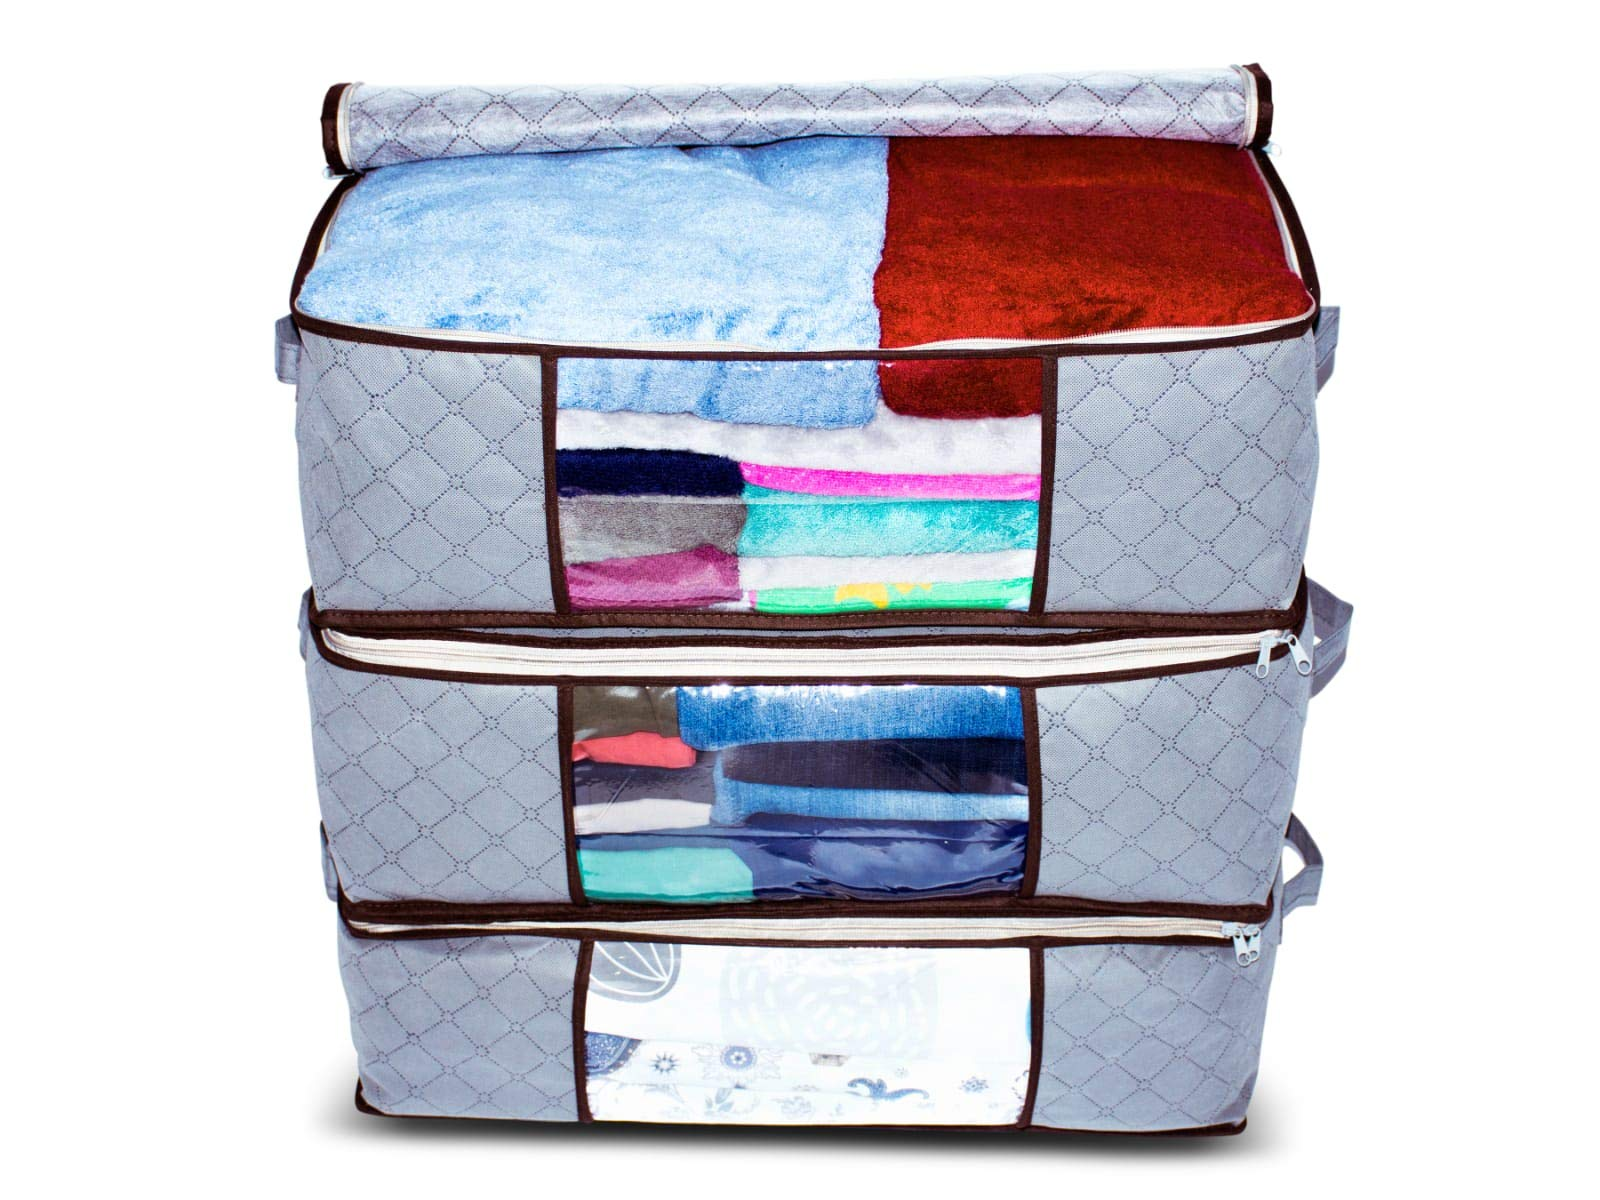 Rokeda Foldable Fabric Storage Bag Organizer, Clear Window, Handles, Extra Strong Zipper, Perfect for bedrooms, Closets, Blanket, Clothes, Garage